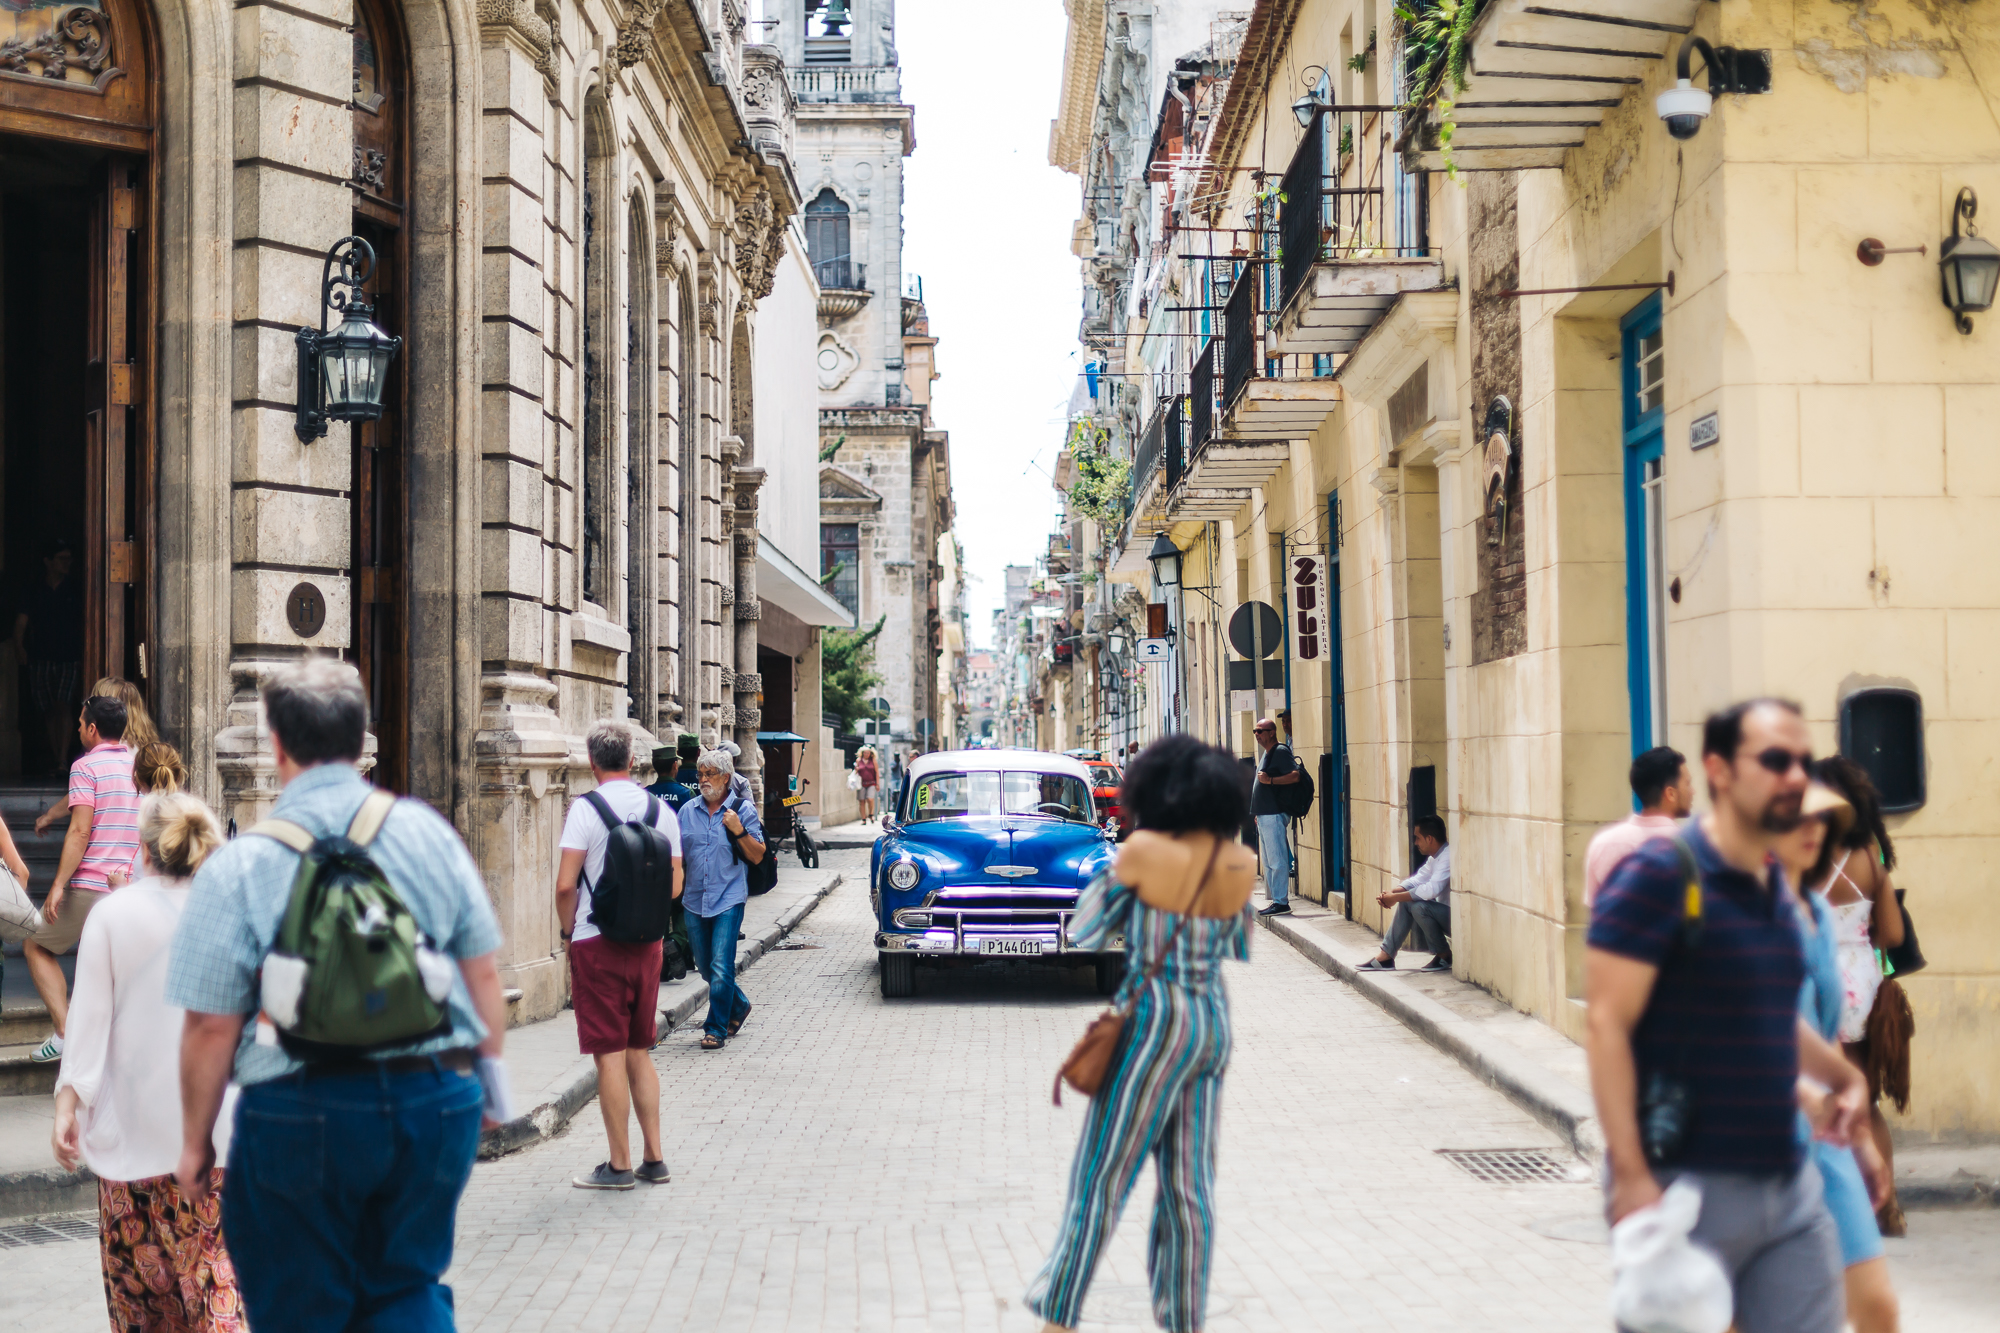 Old classic cars were always surrounded by tourists i n Old Havana